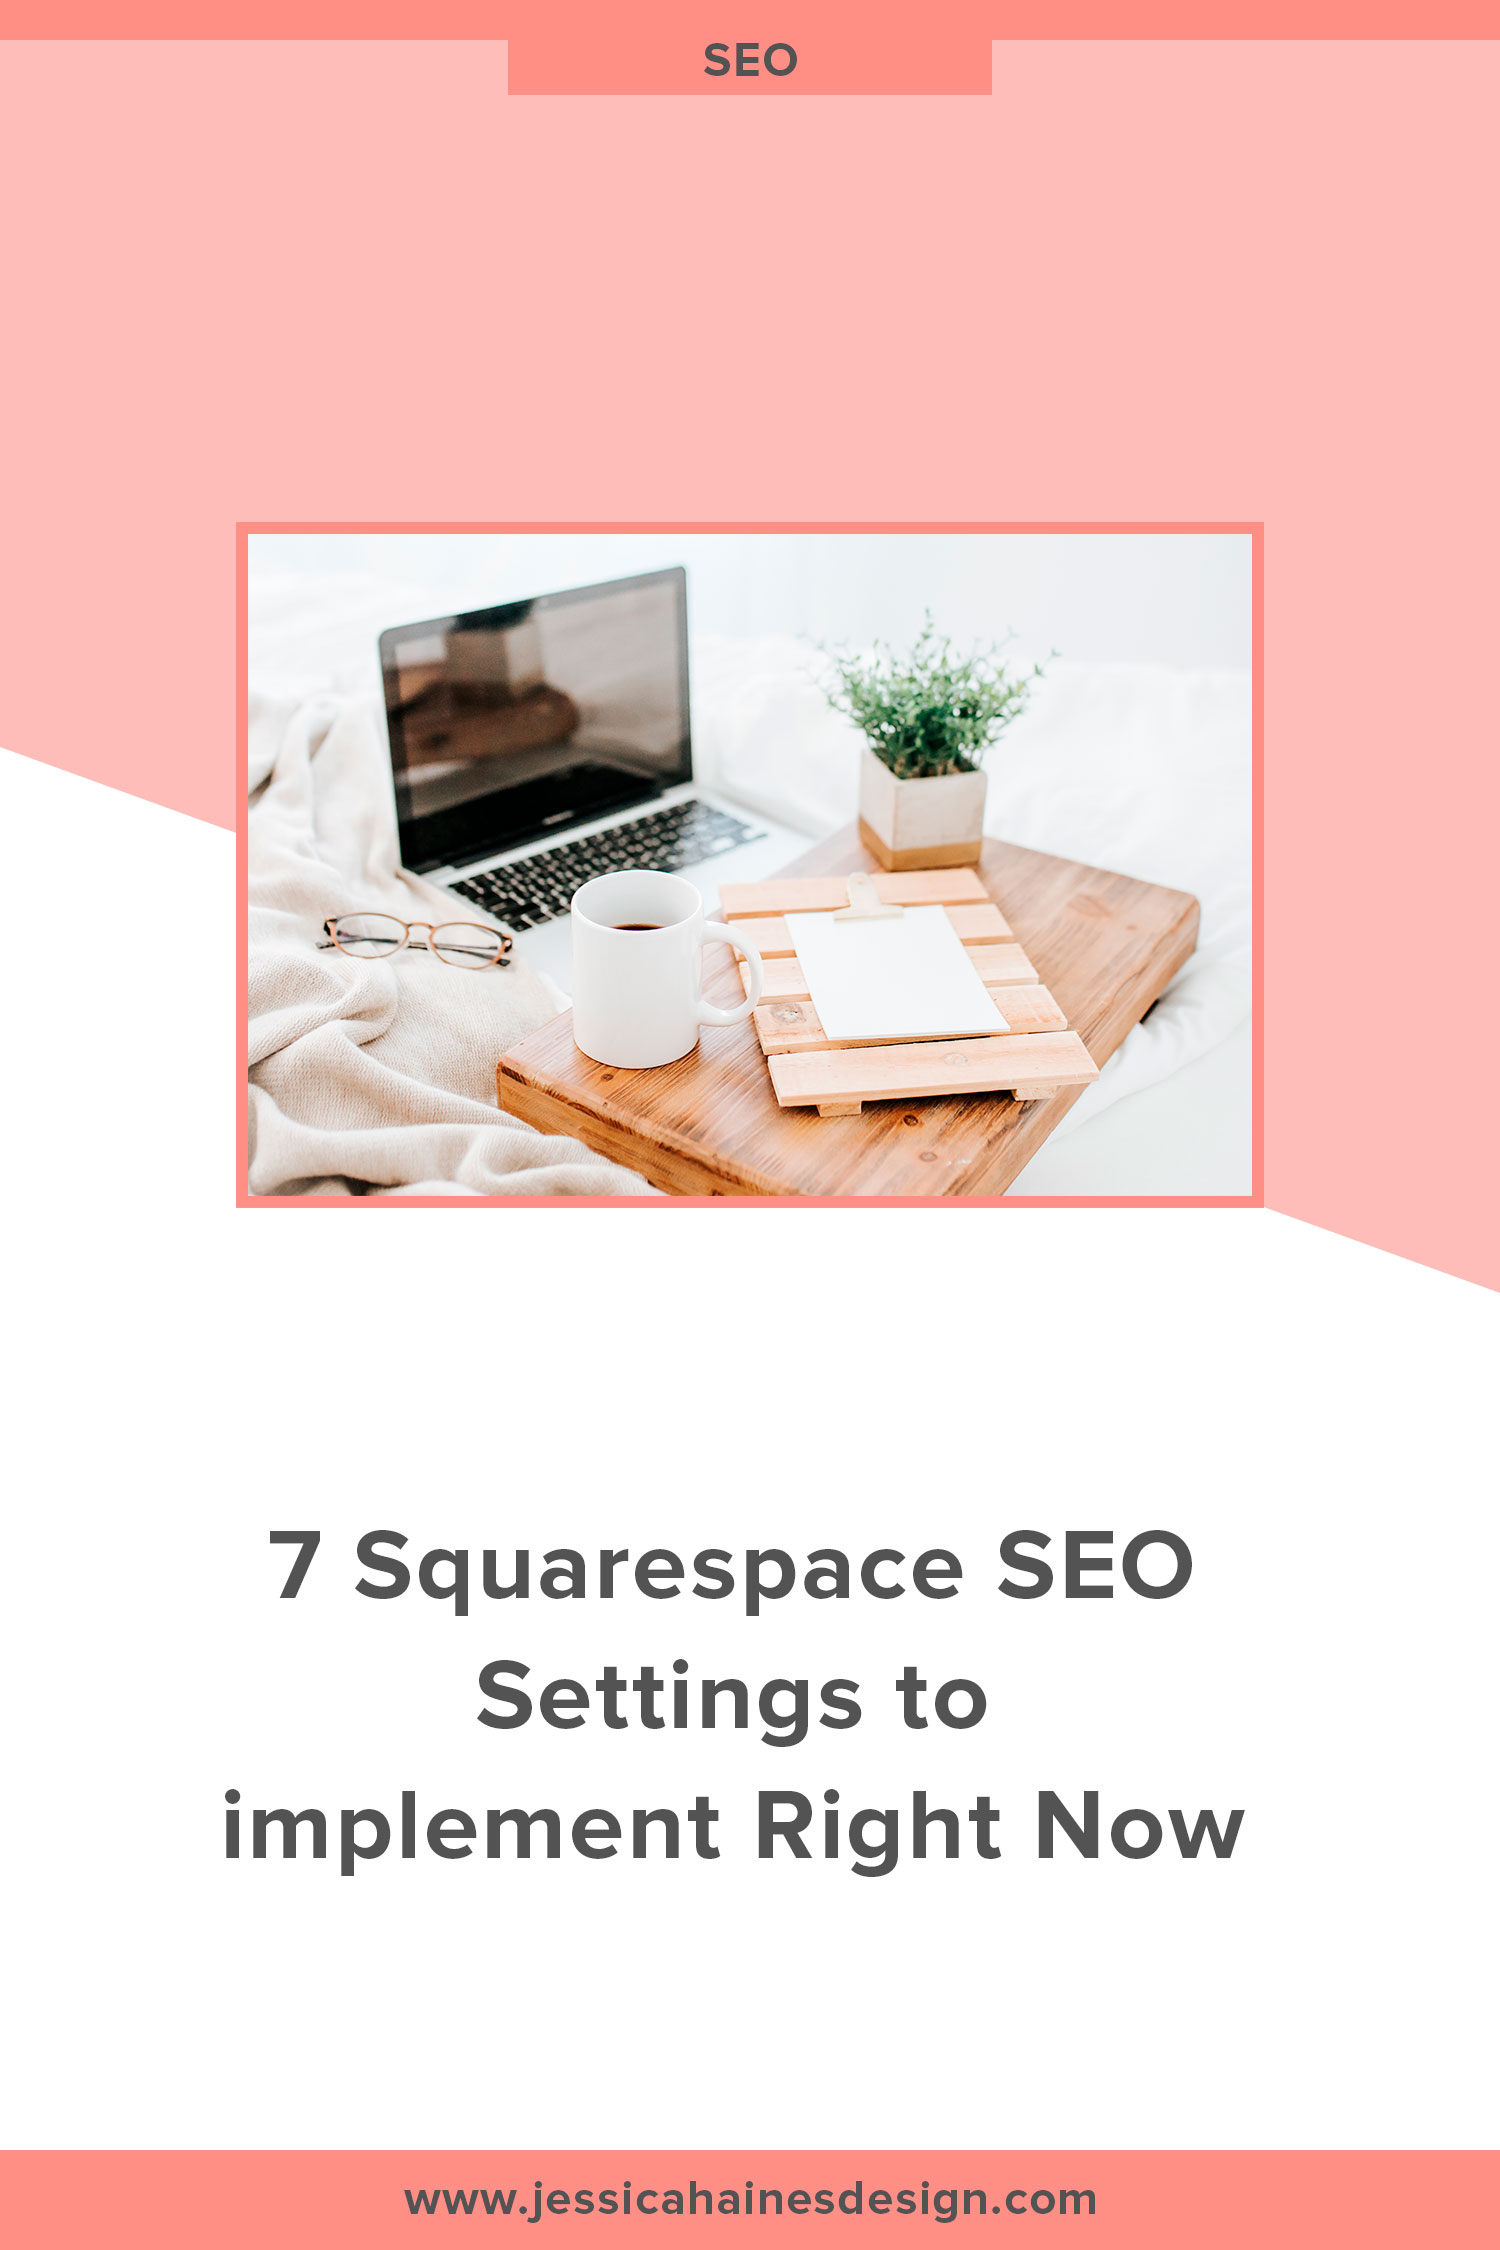 Squarespace has some great features to help with optimizing your website for SEO. Implementing these 7 settings will help to set a strong SEO foundation that you can build on over time, and will help to give your website a better chance at showing at the top of Google search results. Click through to see how to change these settings and take some time this week to make the changes and set the foundation for your SEO | www.jessicahainesdesign.com